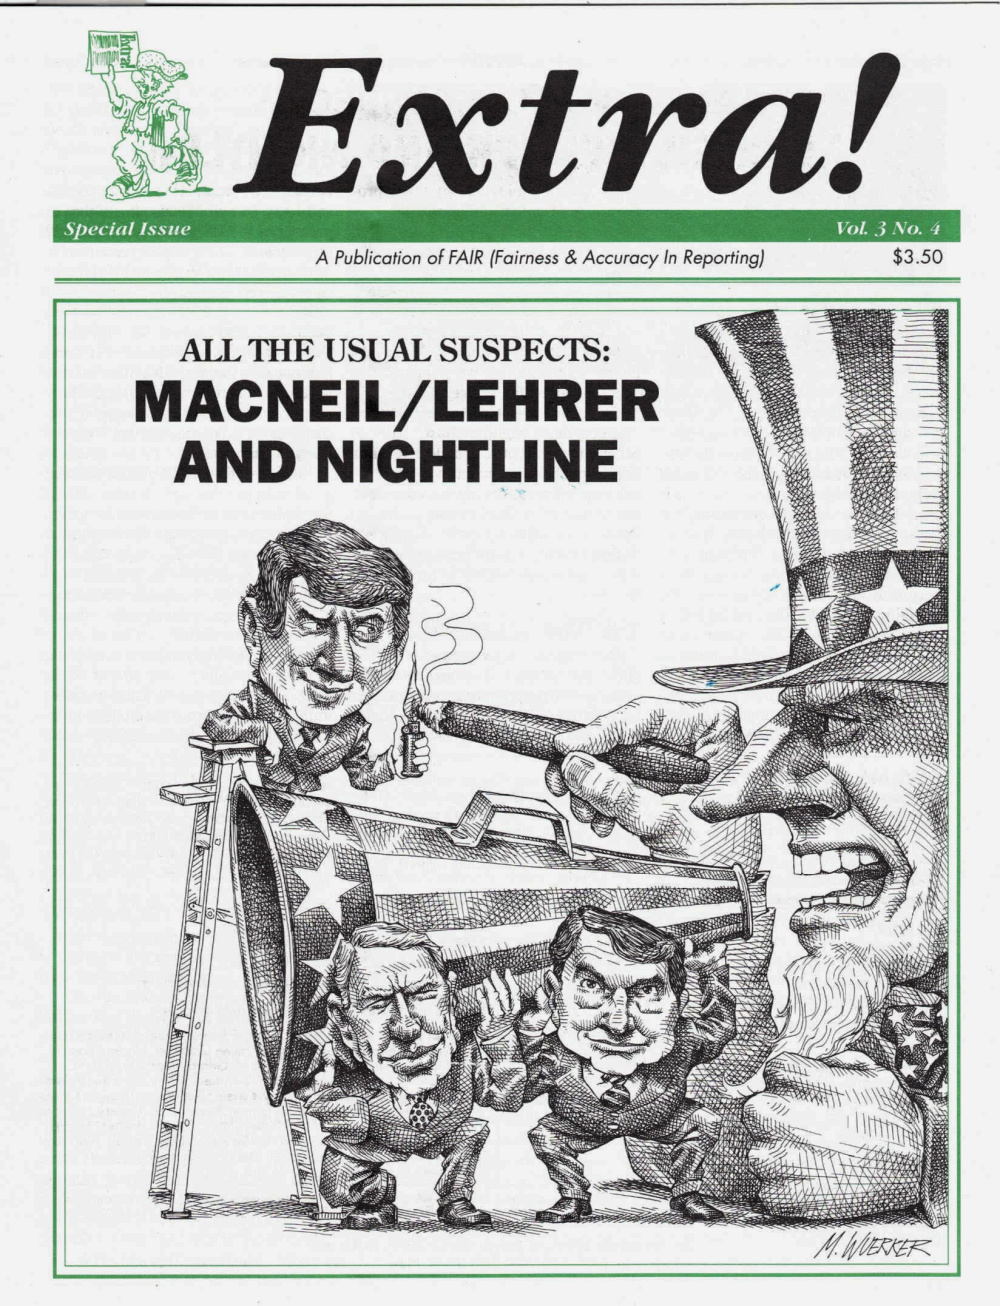 Extra!: All the Usual Suspects MacNeil/Lehrer and Nightline